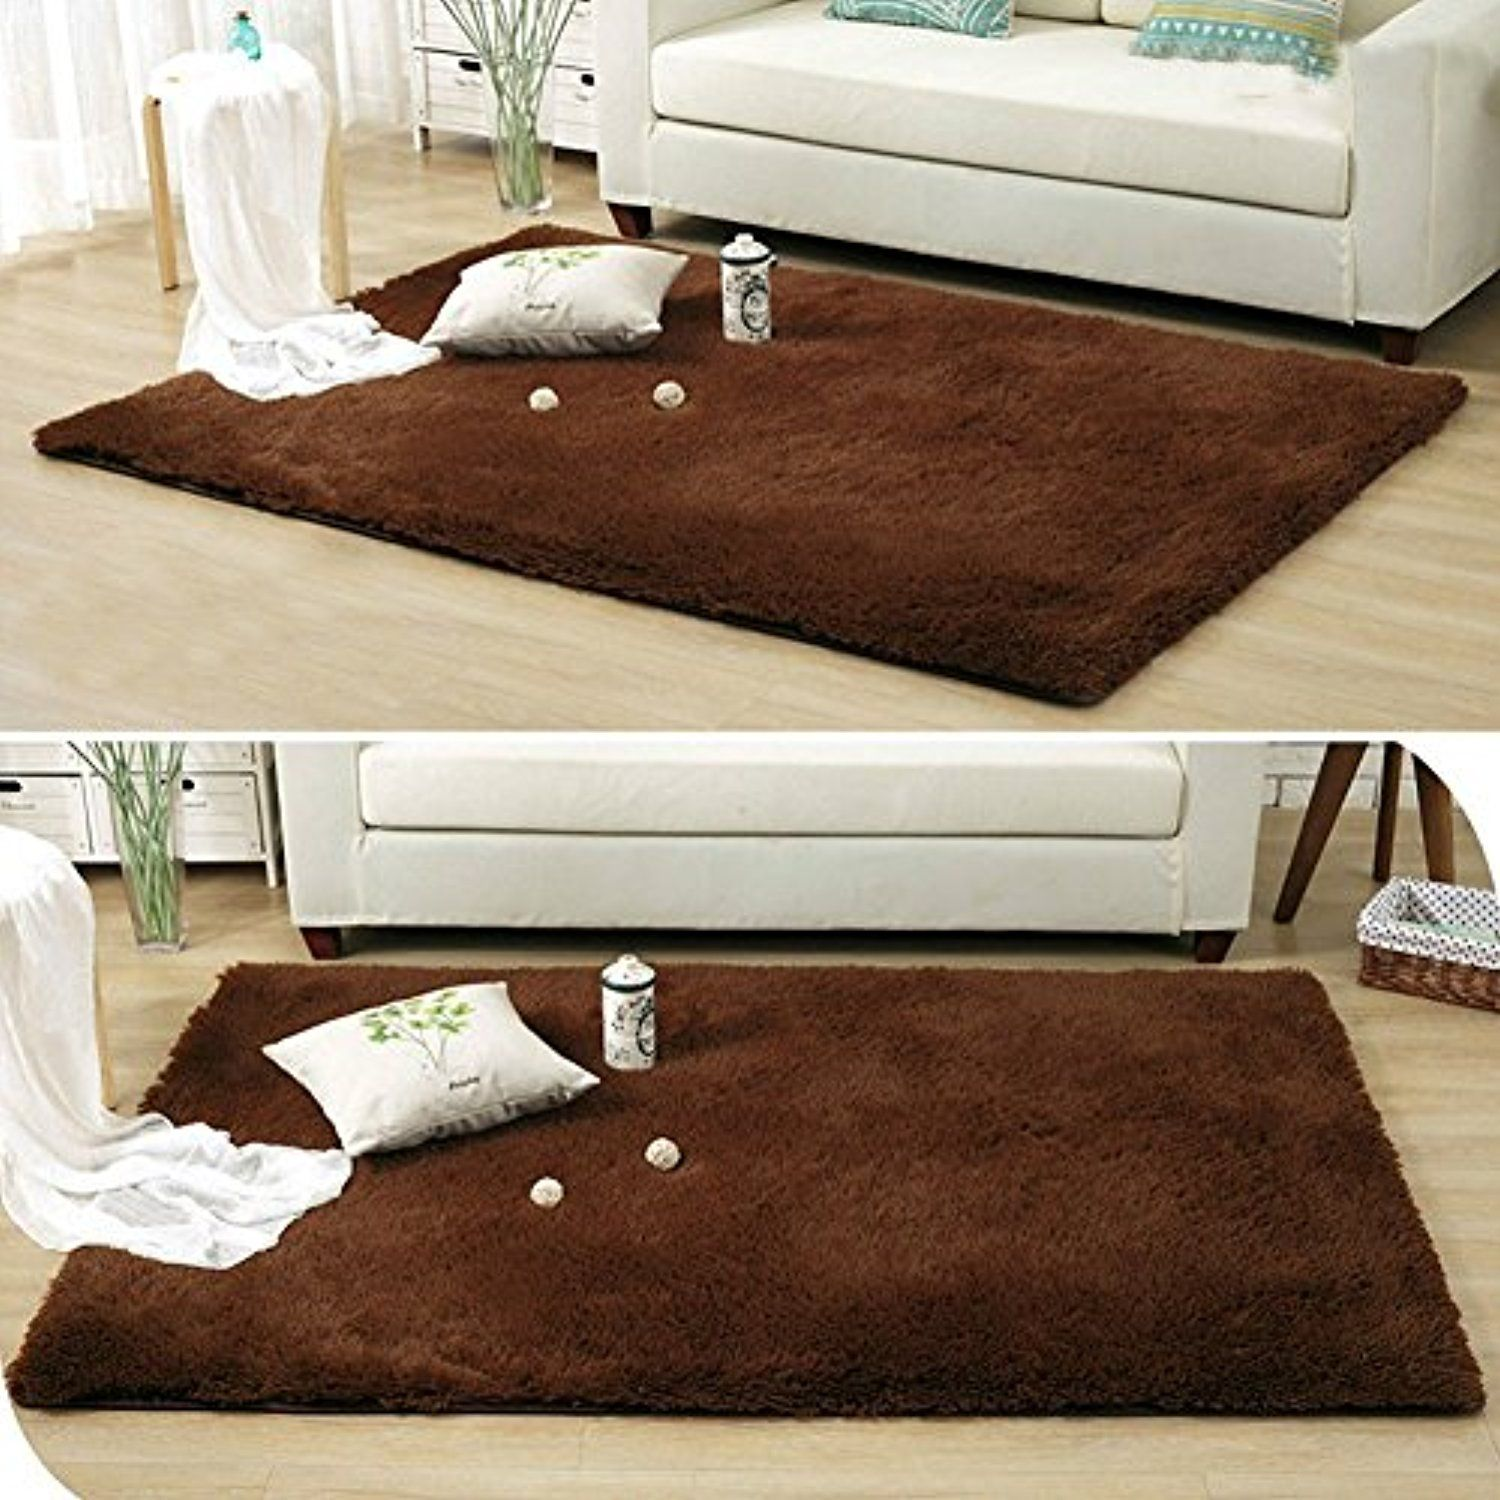 Dodoing Parlor Living Room Shaggy Area Rugs Carpet Anti Slip Resistant Floor Mat Bedroom Carpet Tea Table Carpets Bedroom M Cozy Rugs Bedroom Carpet Home Decor #soft #area #rug #for #living #room